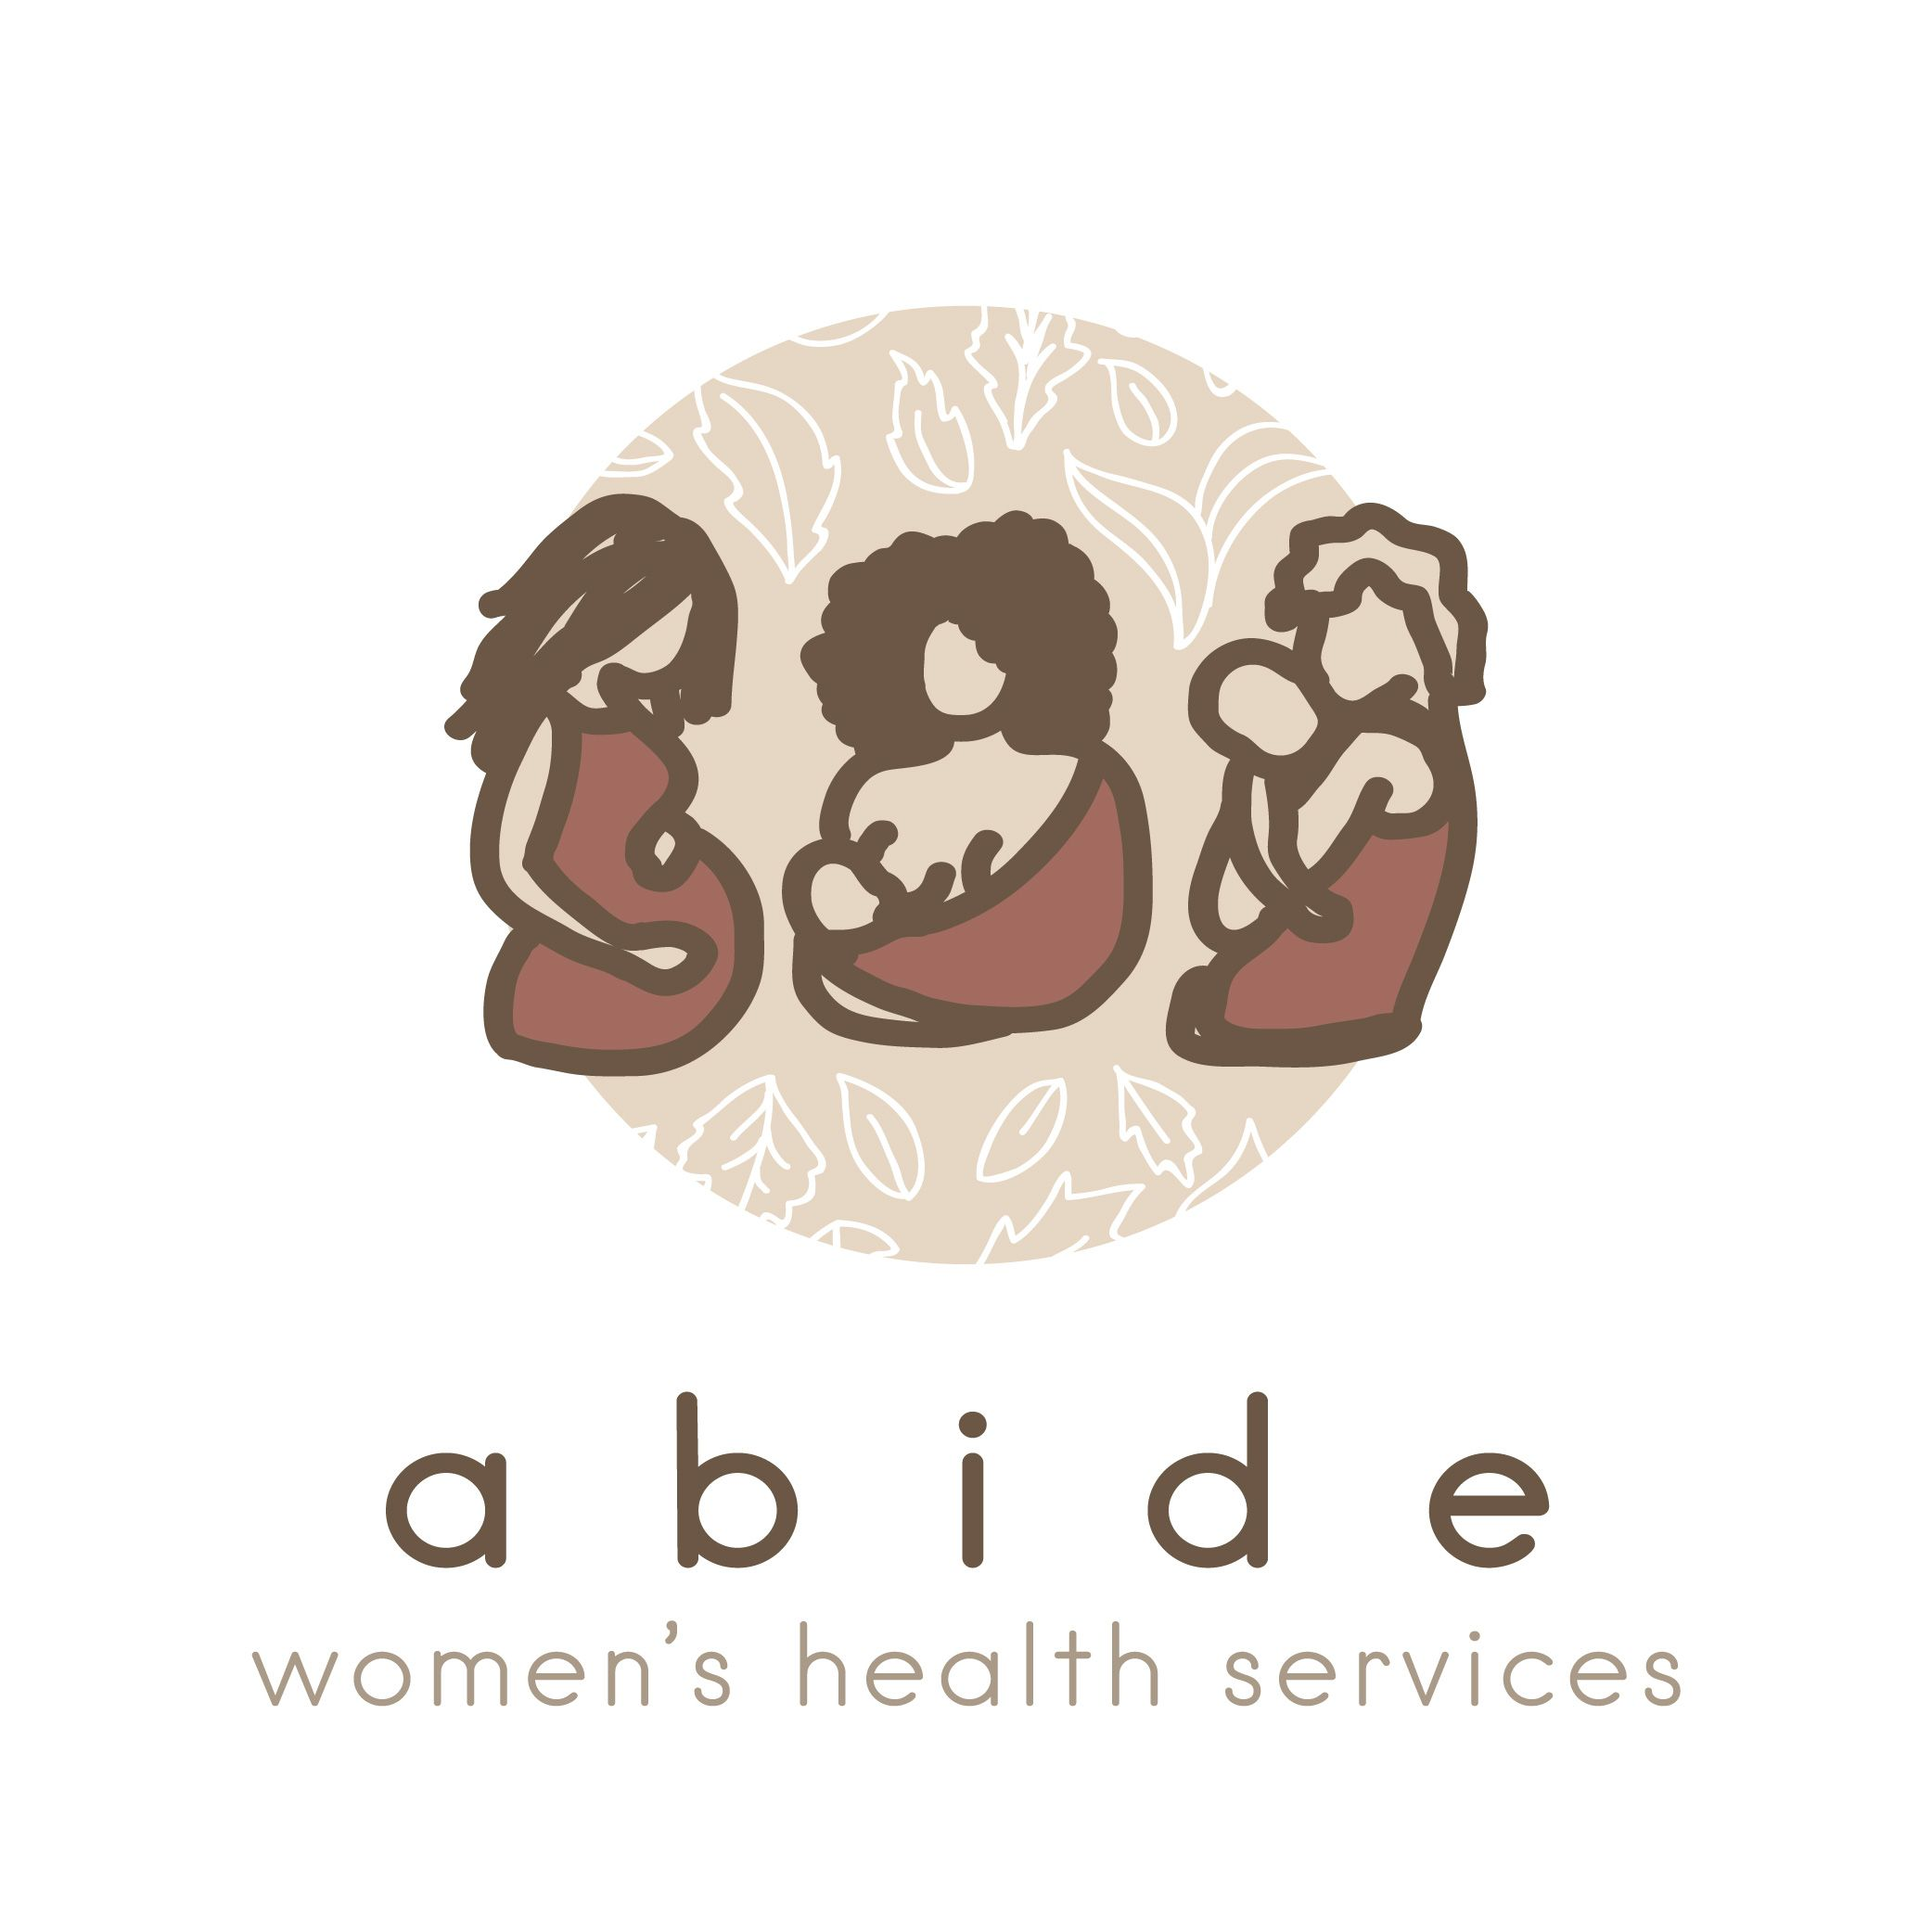 Abide Women's Health Services